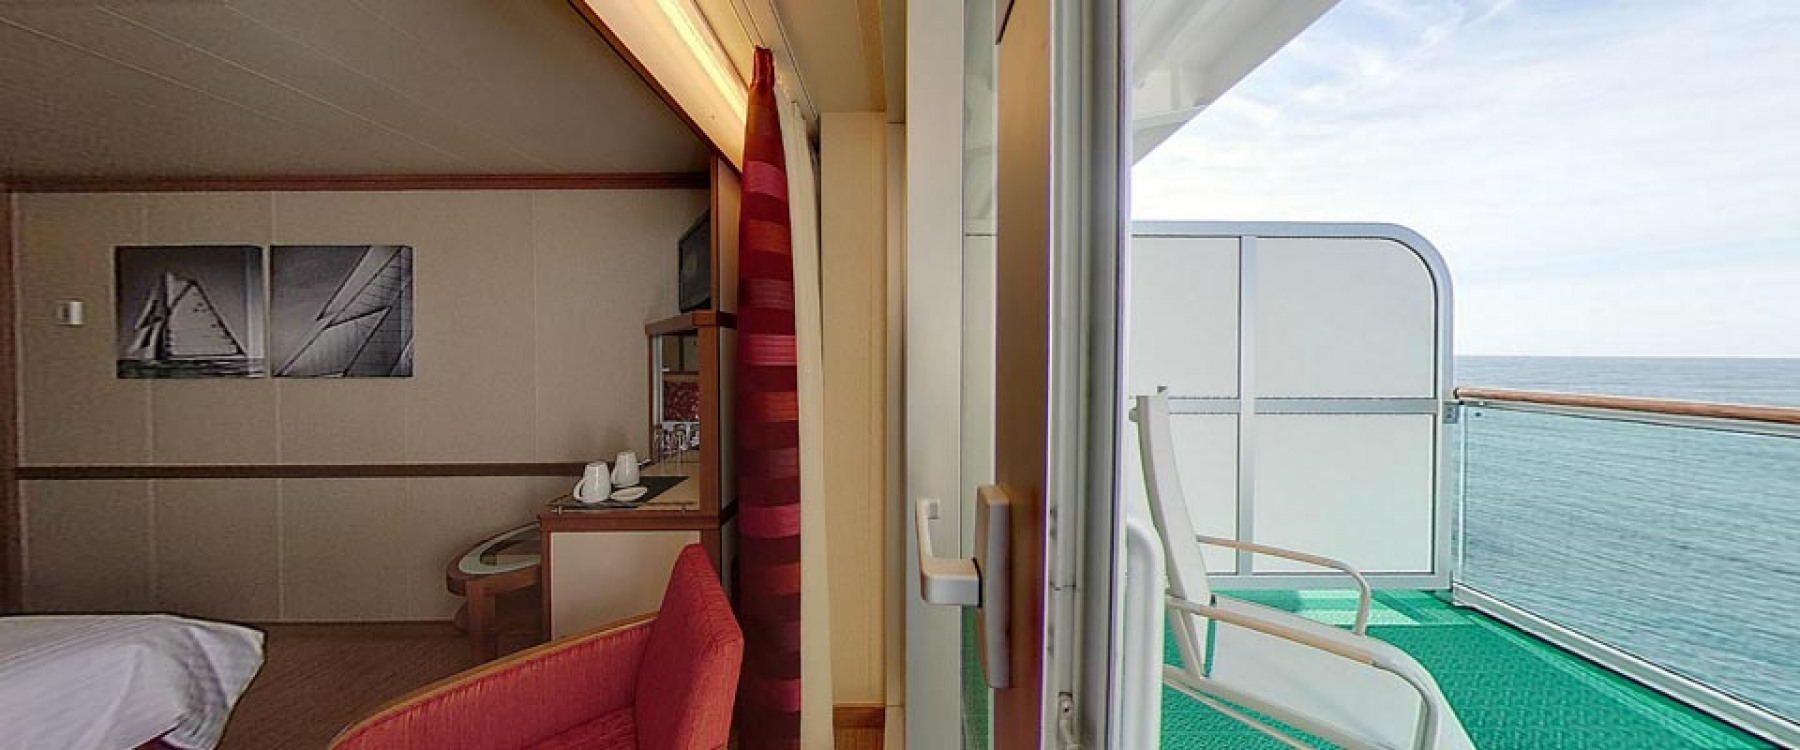 P&O Cruises Azura Accommodation Balcony Cabin.jpg